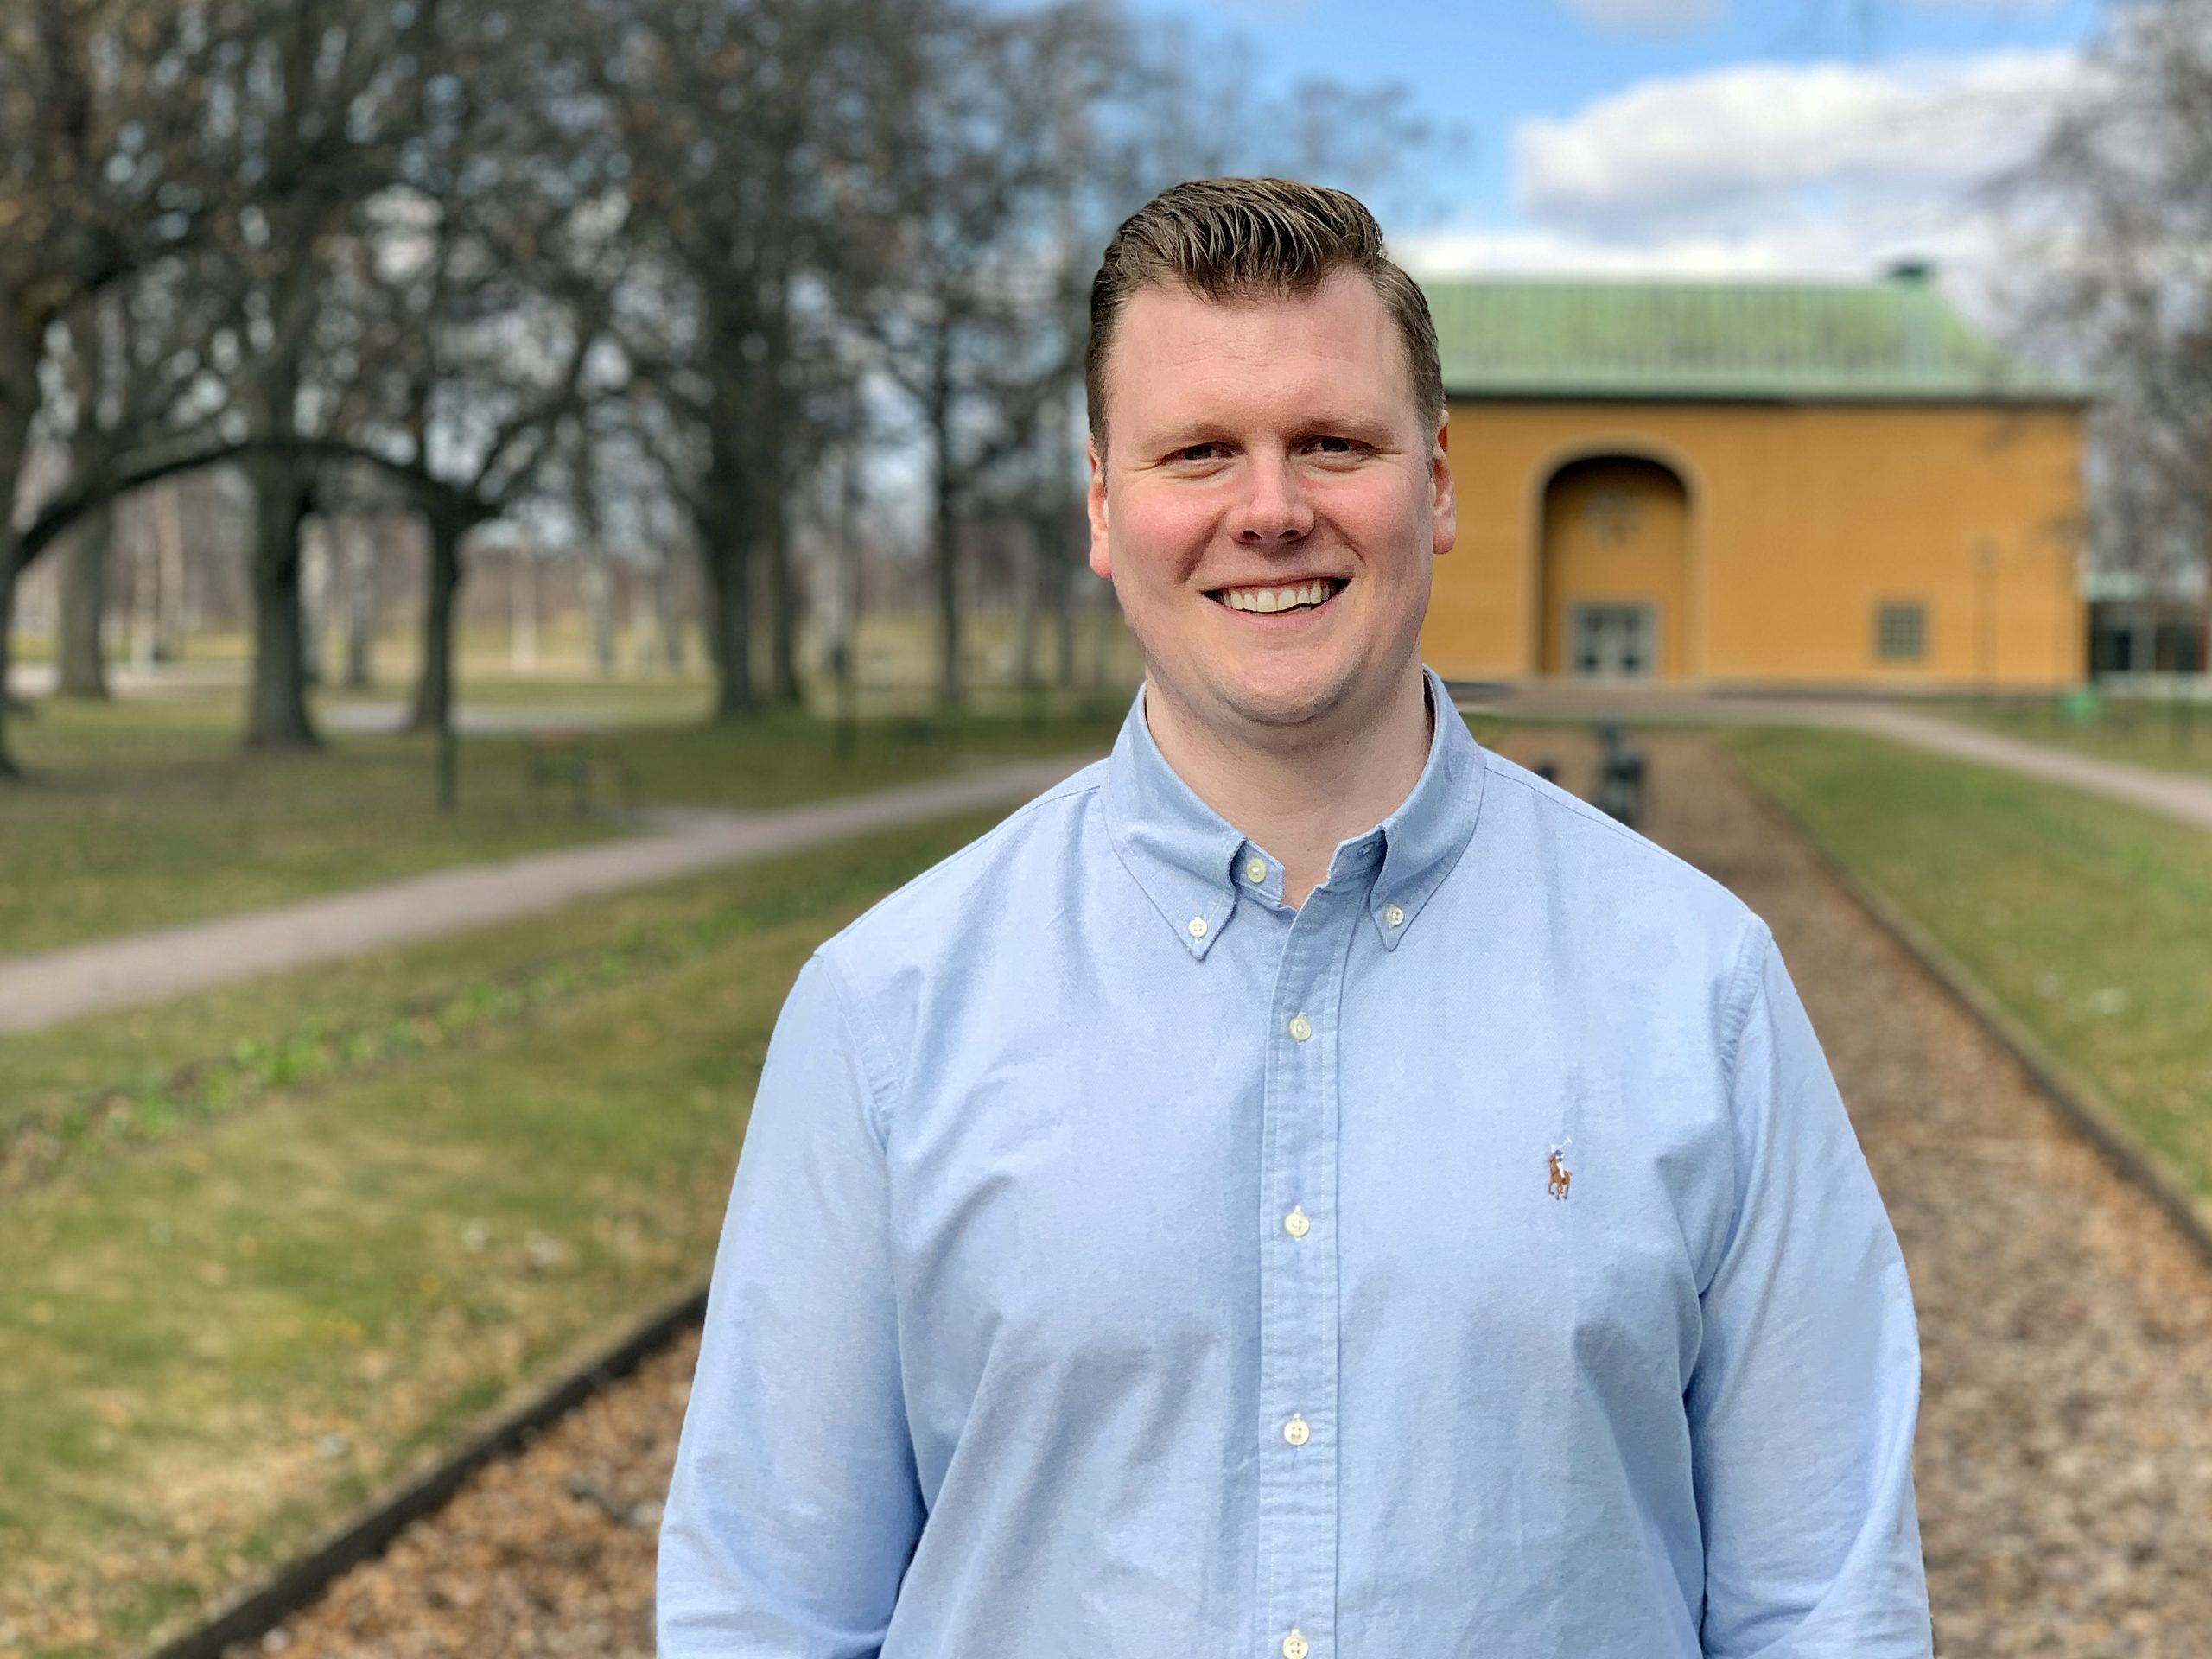 Daniel Stiglert kliver in i rollen som key account manager med kundrelationer.